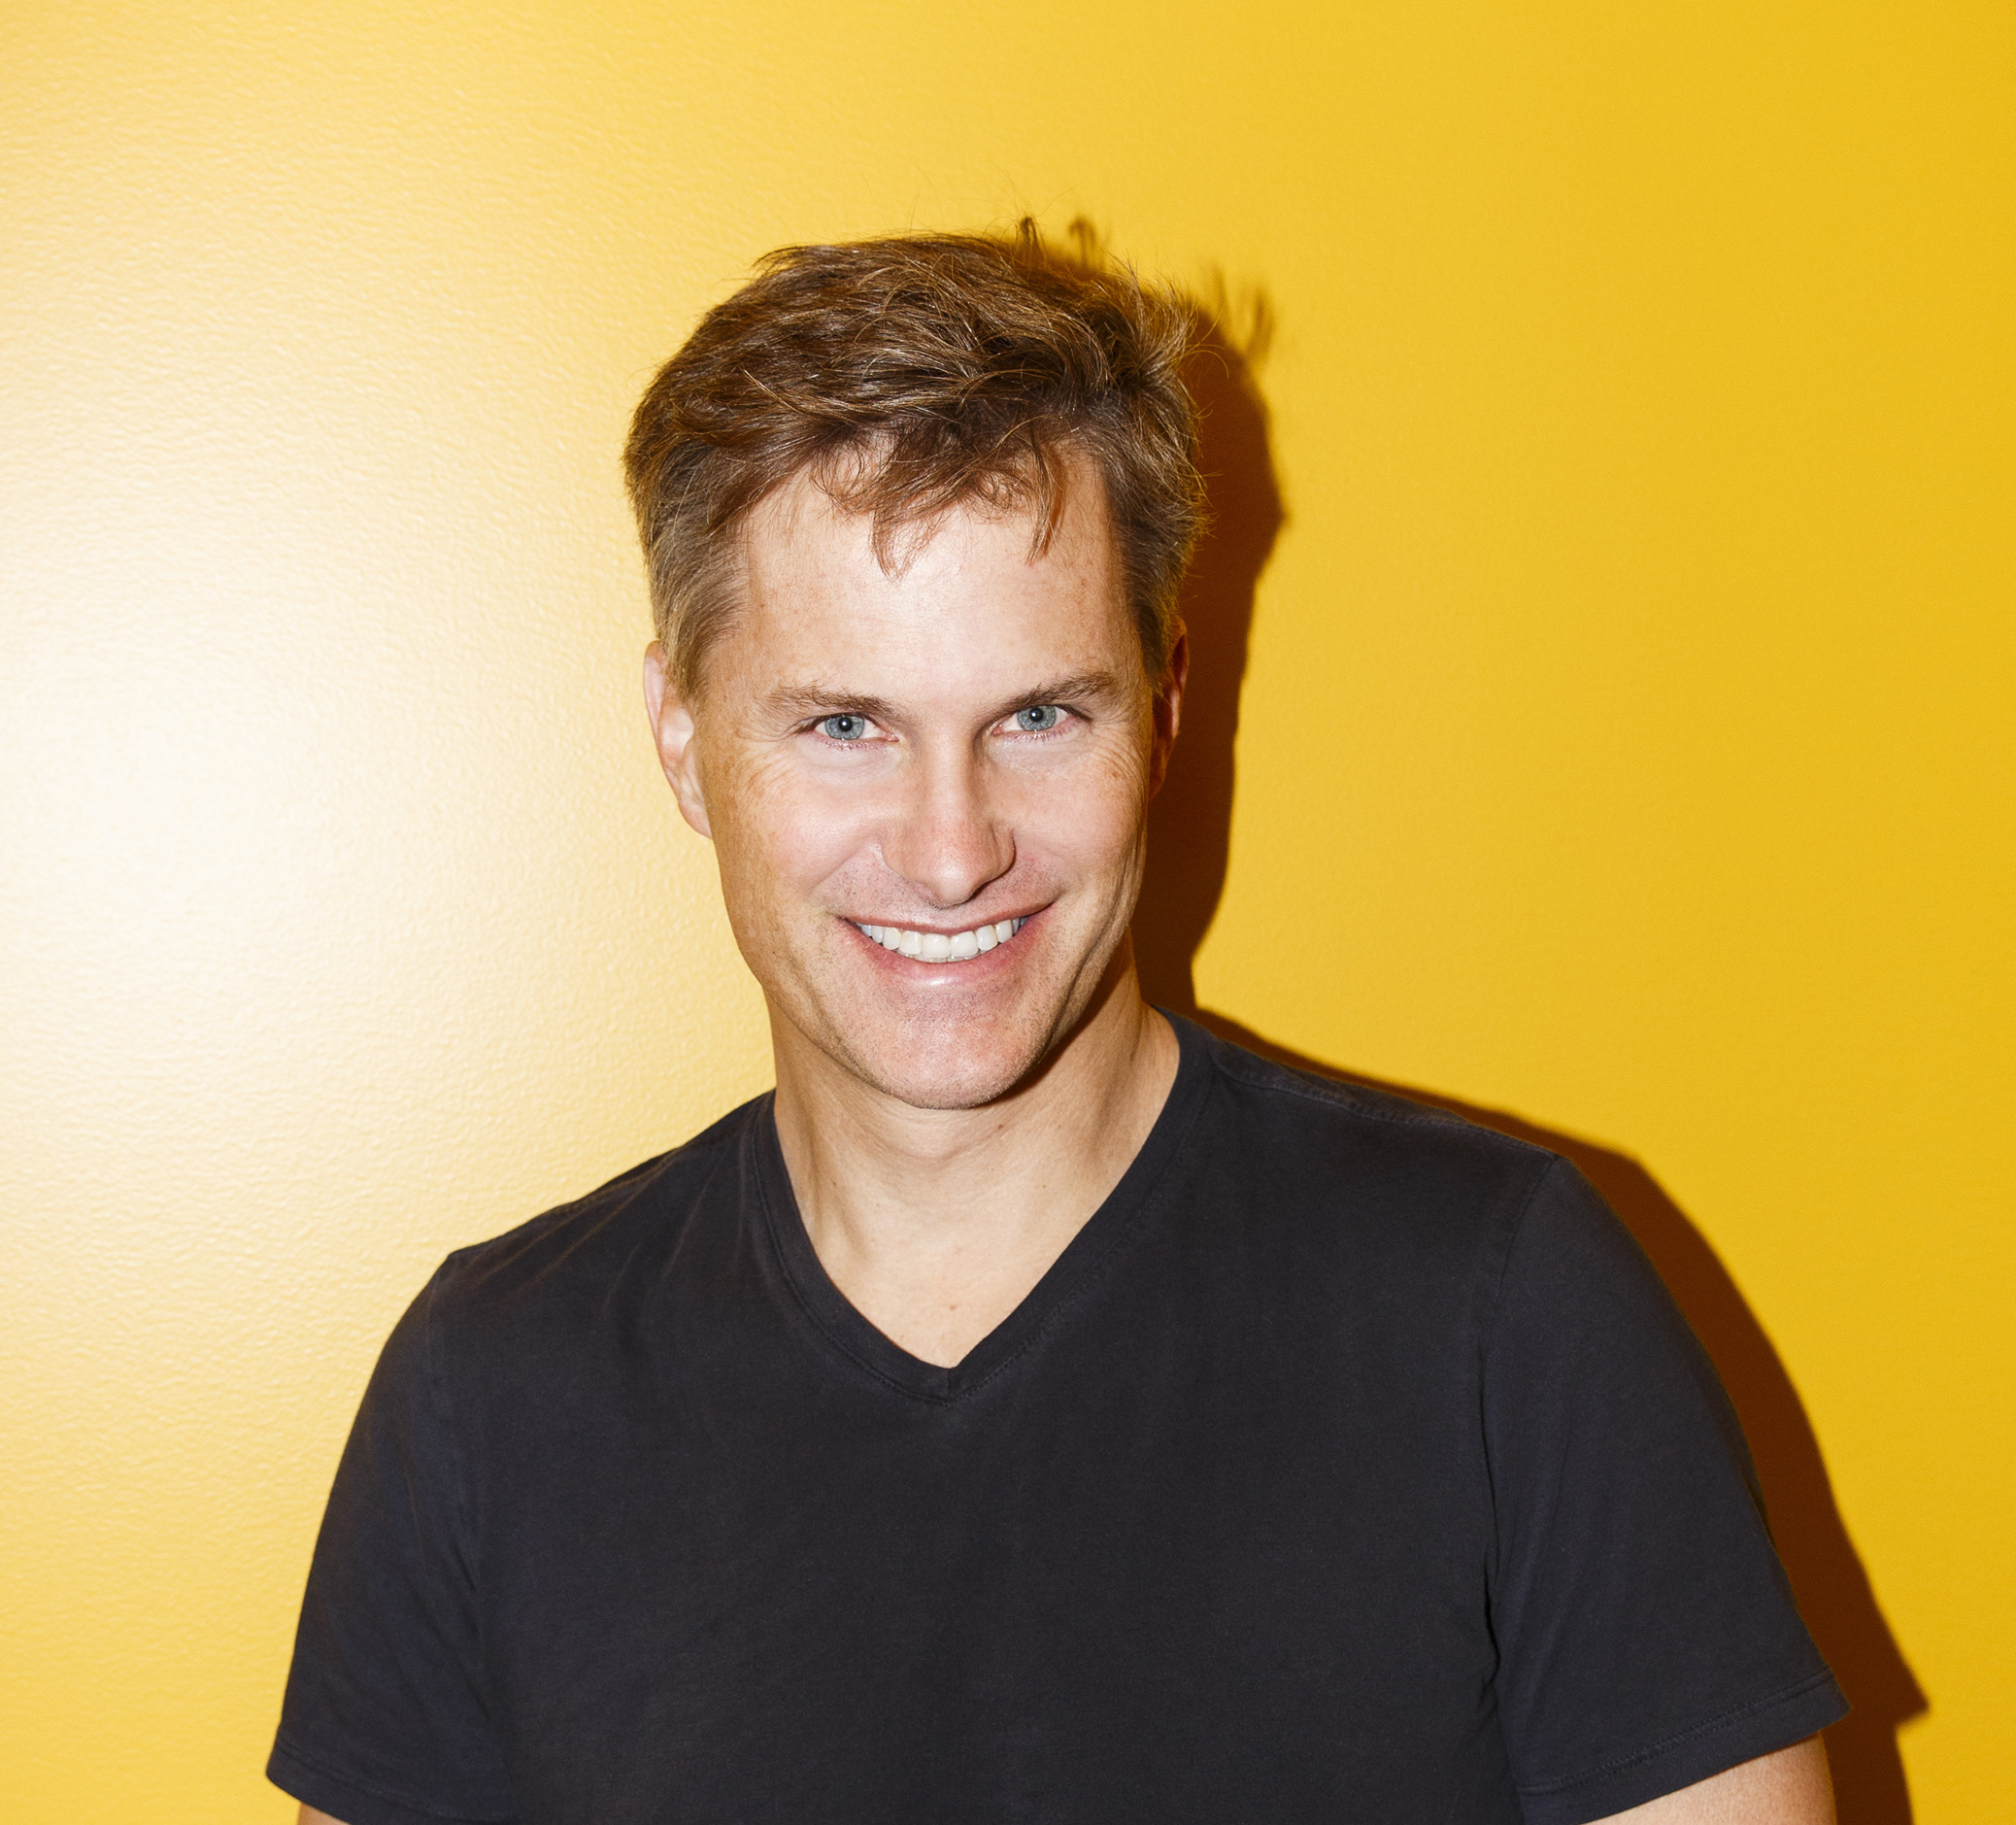 A photo of Kevin Hartz, Co-Founder of Eventbrite